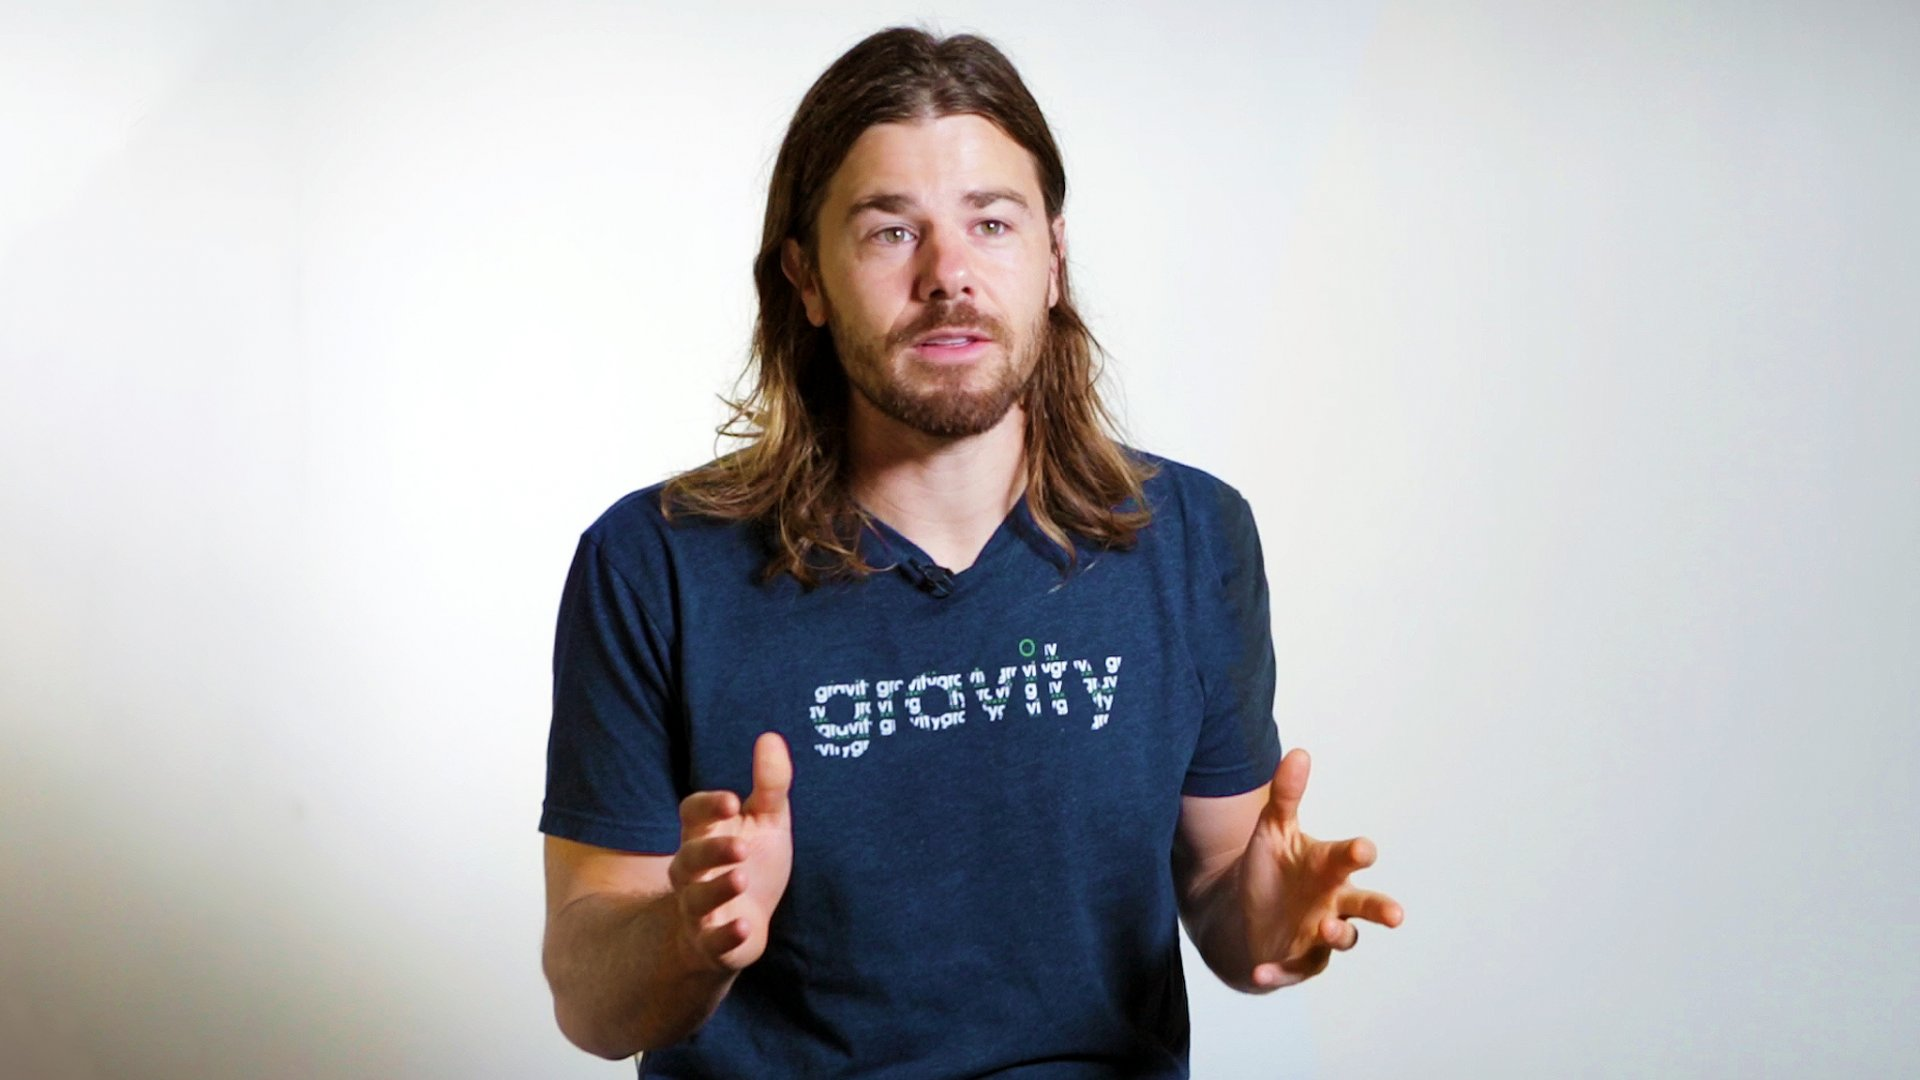 Gravity Payments' $70,000 Founder Scores $500,000-Plus Book Deal